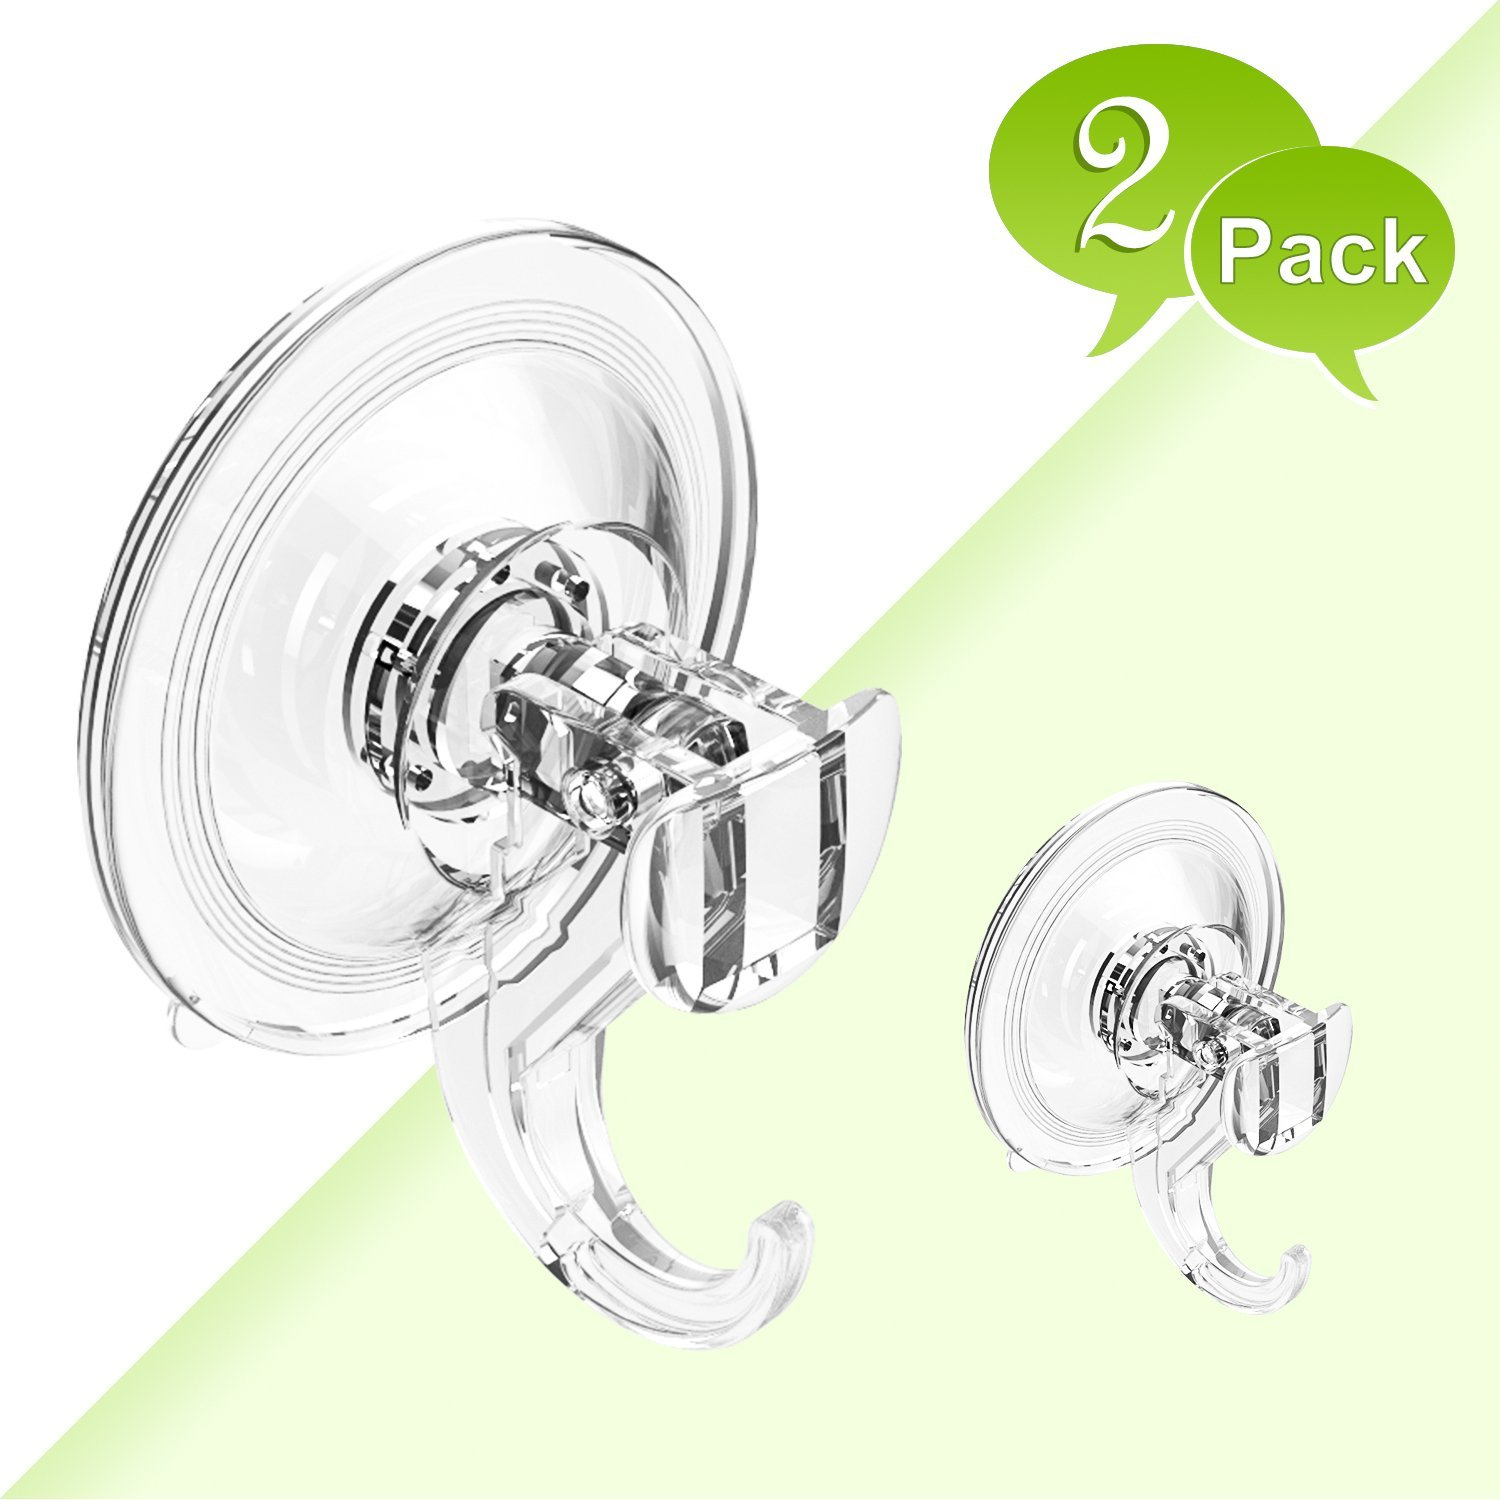 BUDGET & GOOD Shower Suction Hooks Removable Suction Cup Hooks for Shower Bathroom Kitchen Plastic Wreath Hanger Hooks for Towel Loofah Bathrobe Coat, 2 Pack Clear